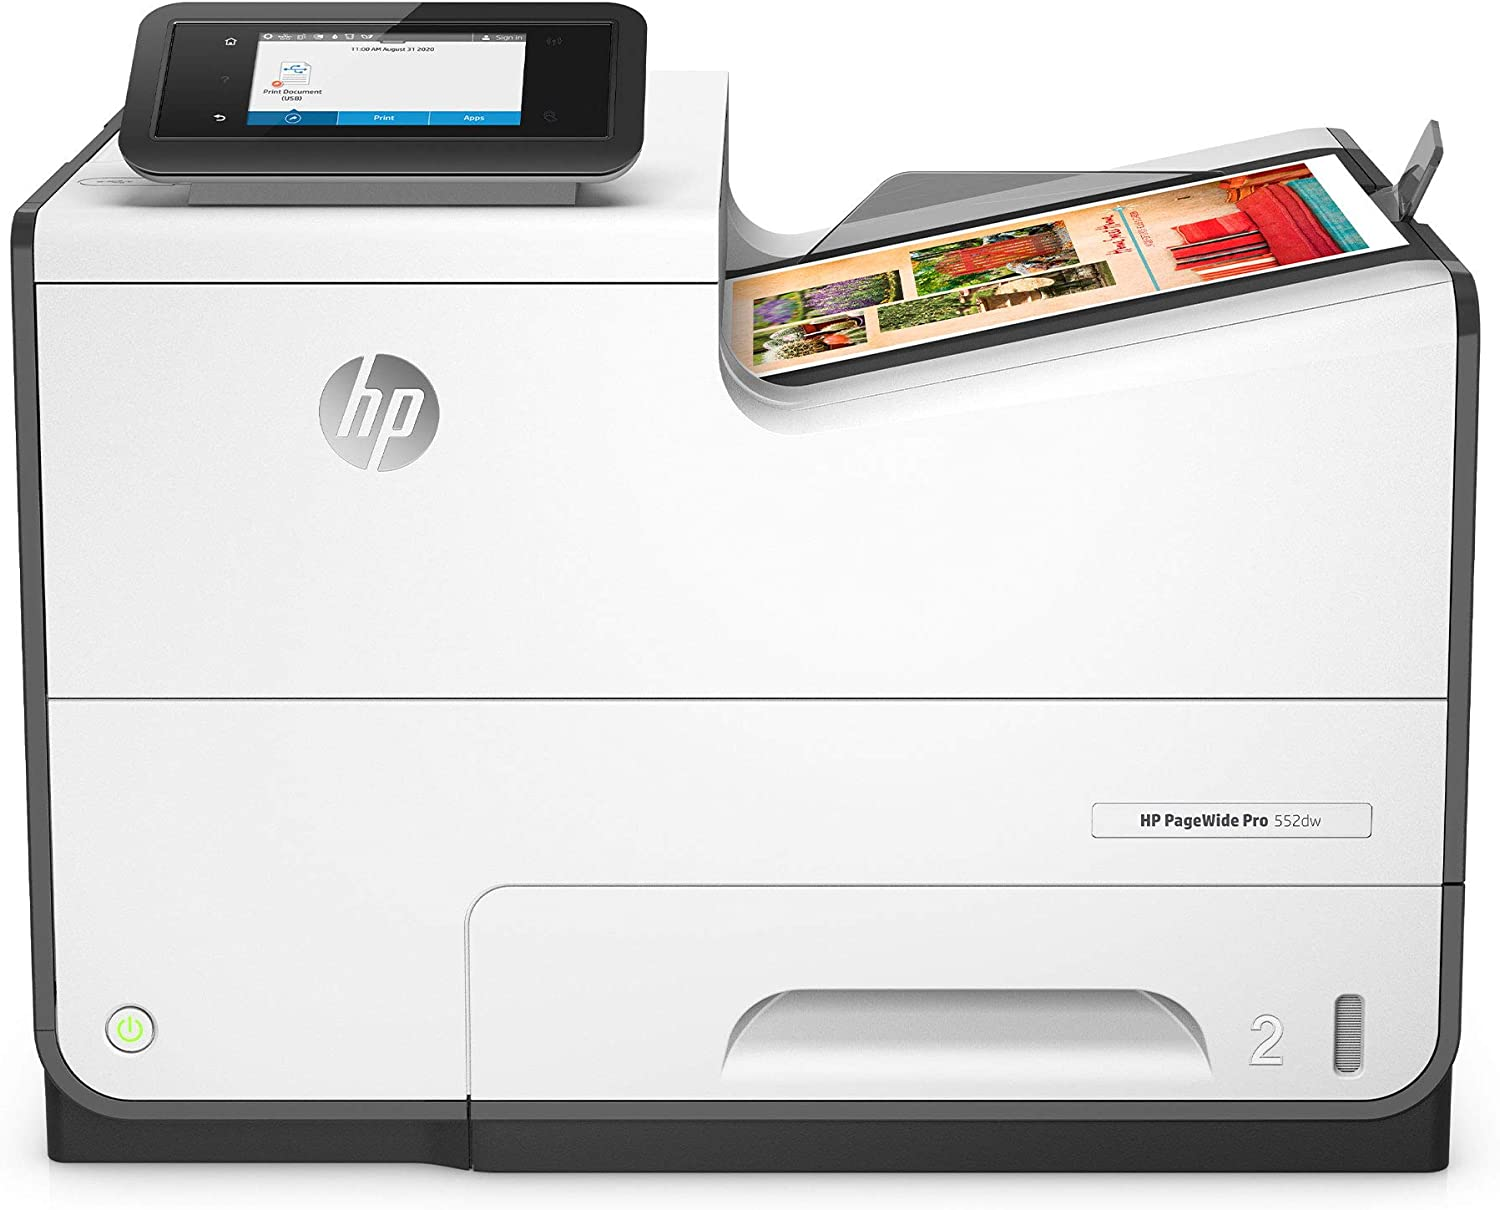 HP PageWide Pro 552DW Color Business Printer, Wireless & 2-Sided Duplex Printing, 20.8 x 23.6 x 19.5 (D3Q17A#B1H)